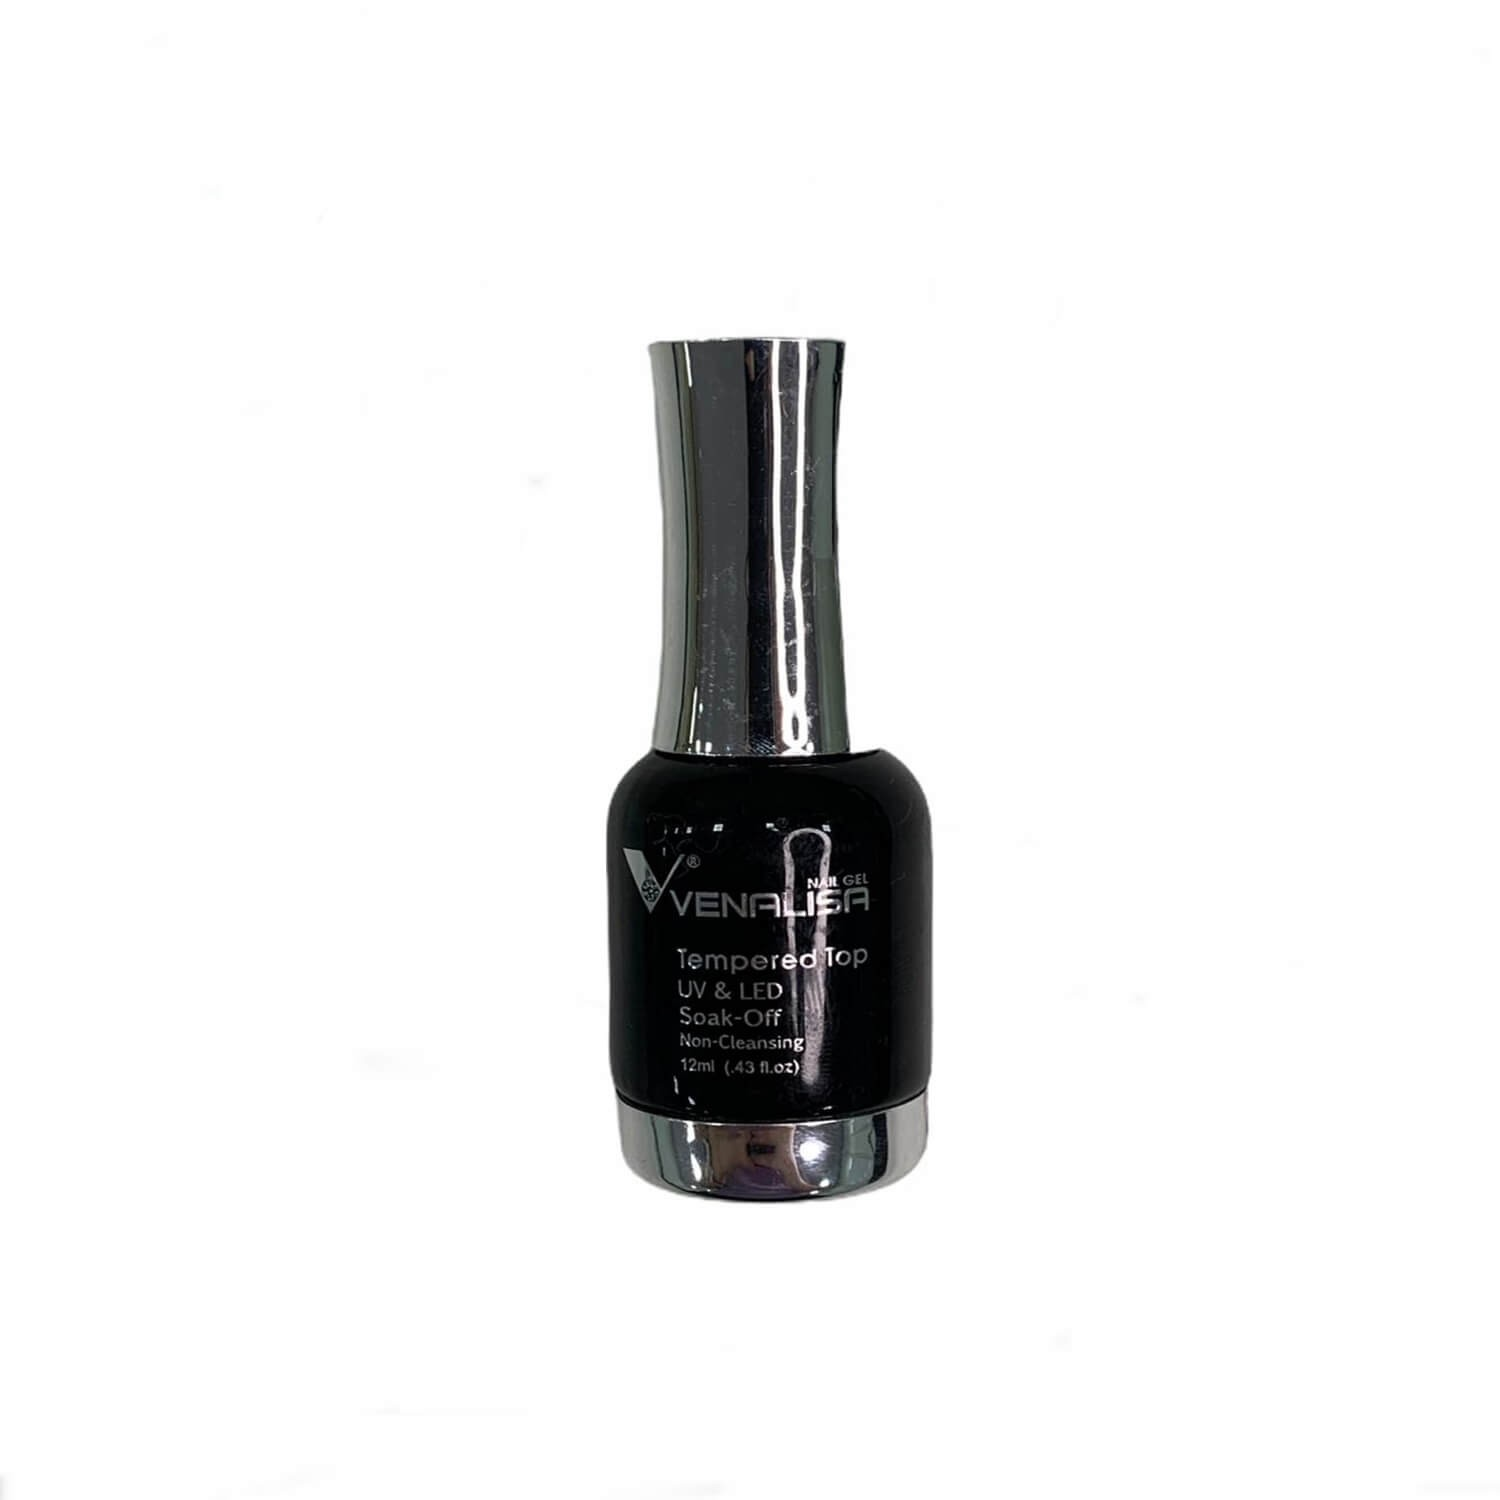 Top Coat Temperado - 12ml - Venalisa